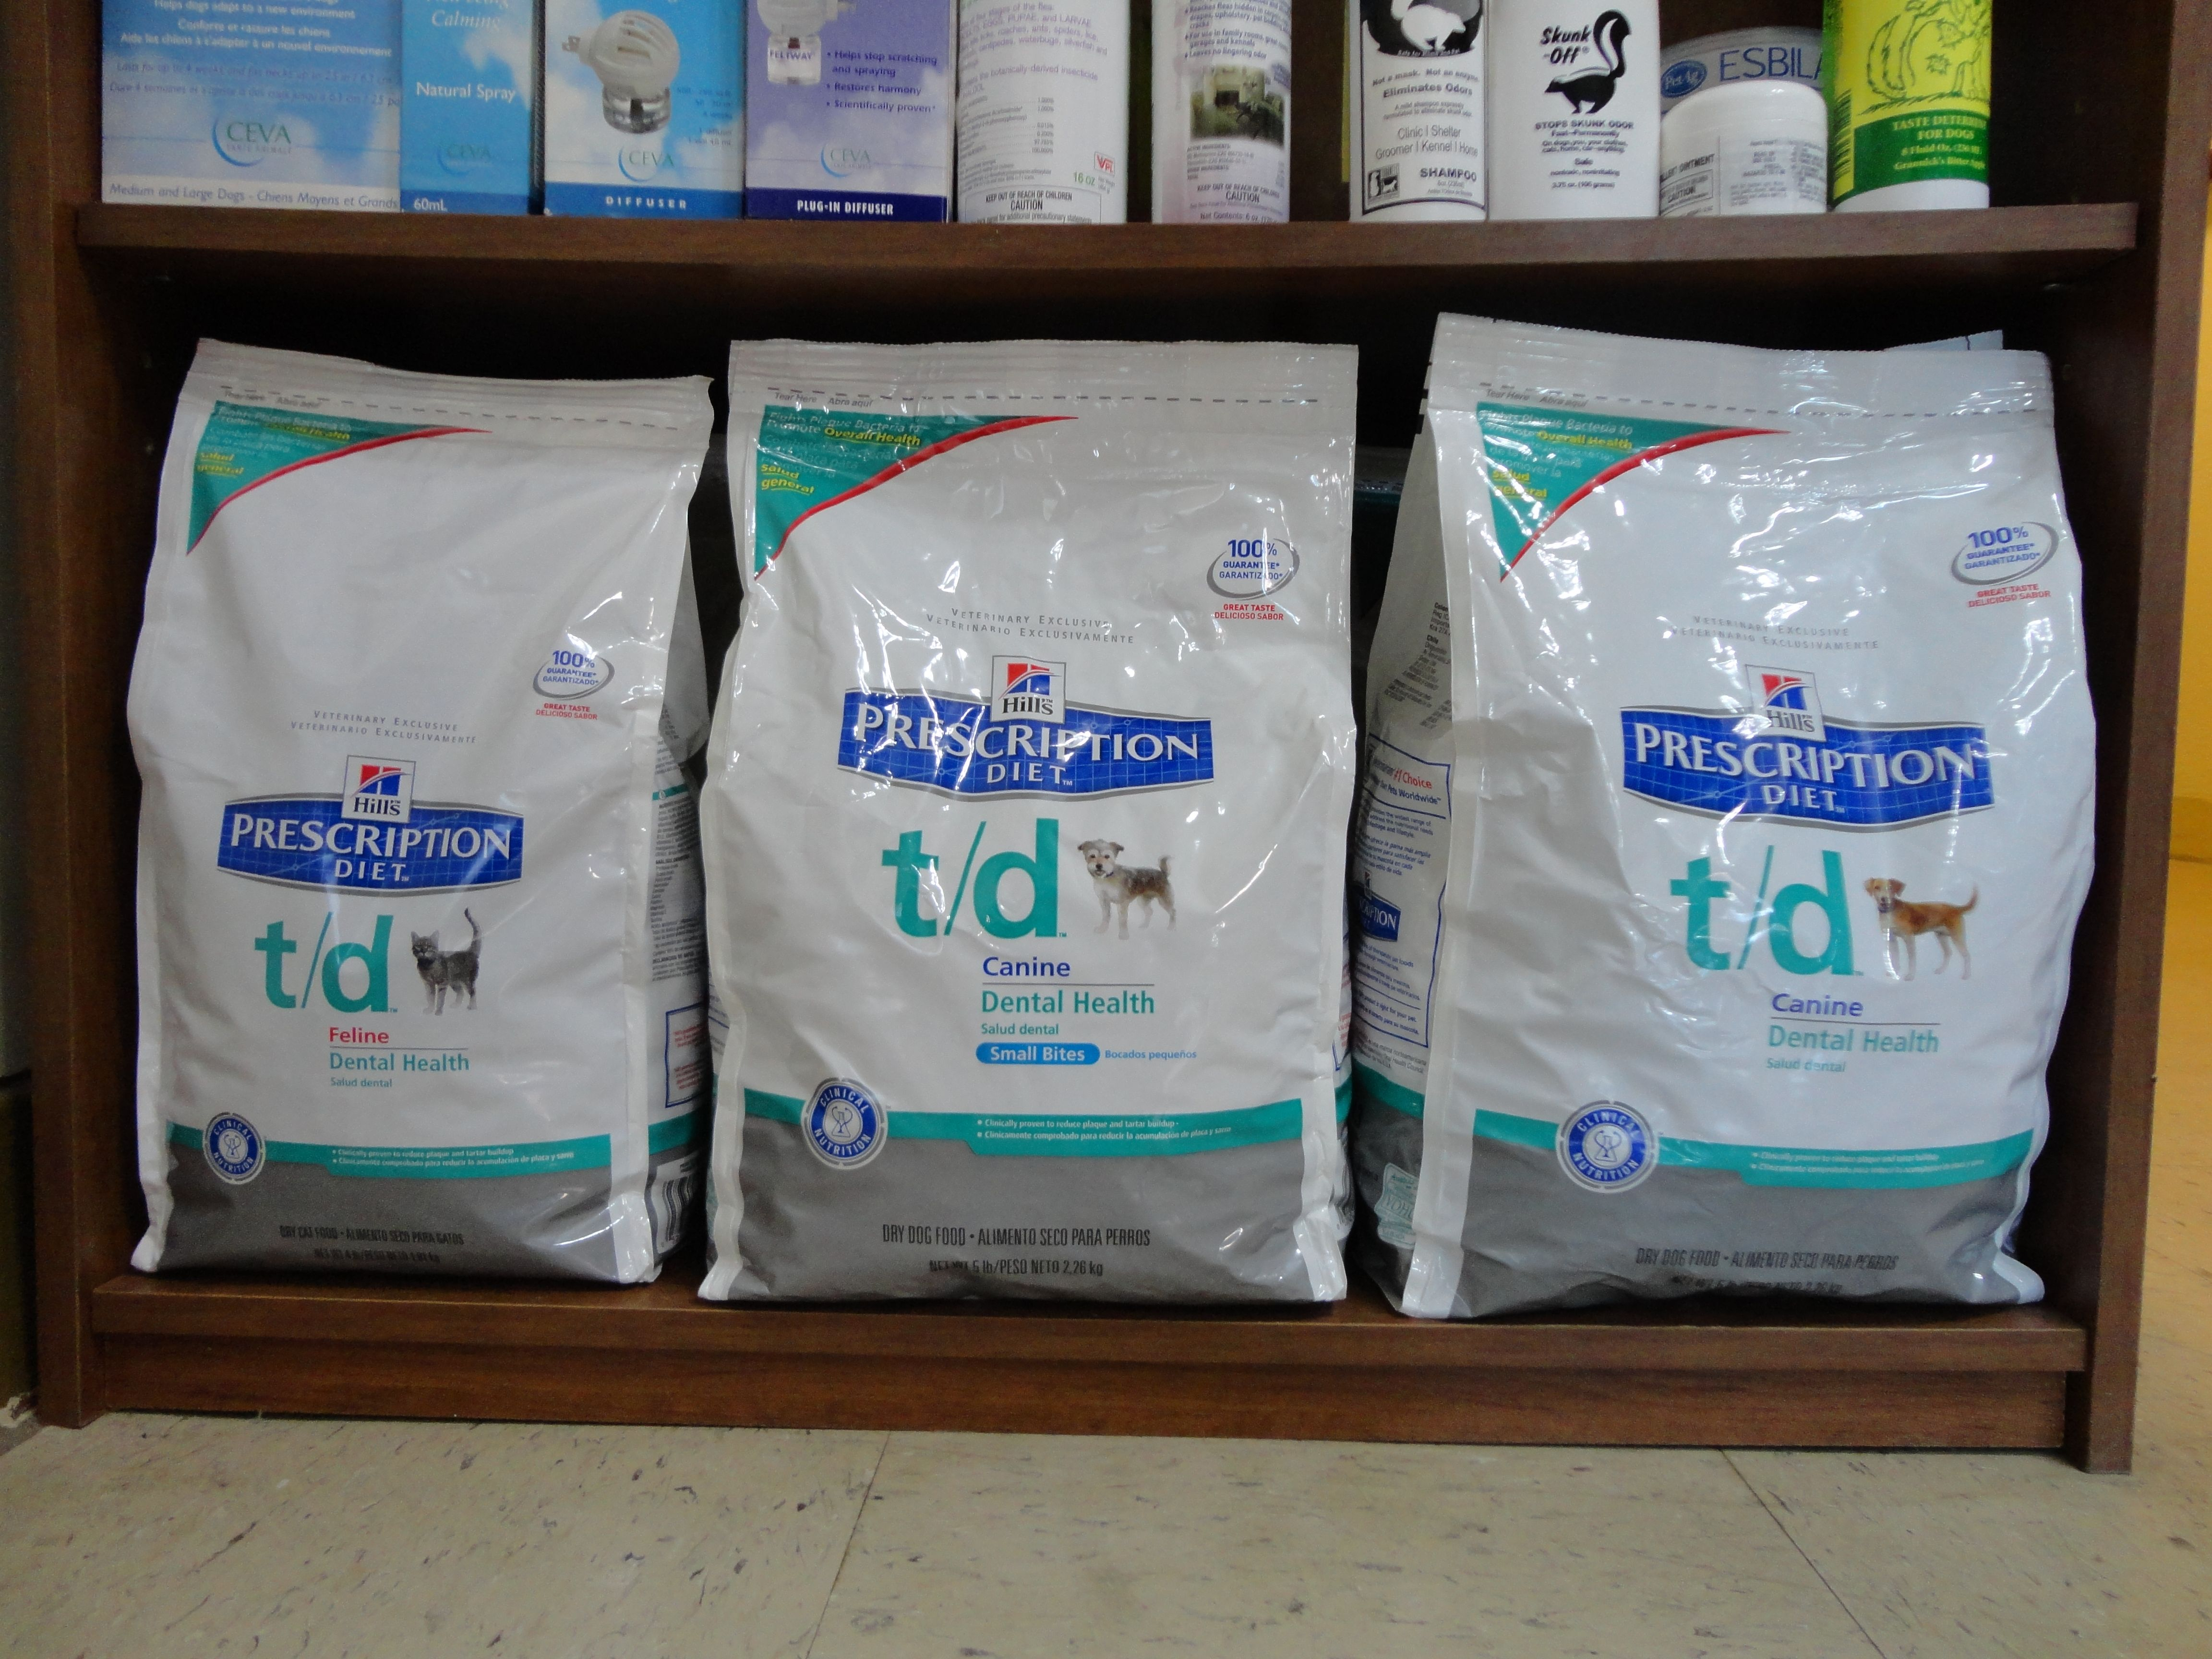 Hill S Science Diet T D Is A Great And Affordable Way To Help Keep Your Pet S Teeth Clean And Breath Smell Teeth Cleaning Dog Teeth Cleaning Hills Science Diet